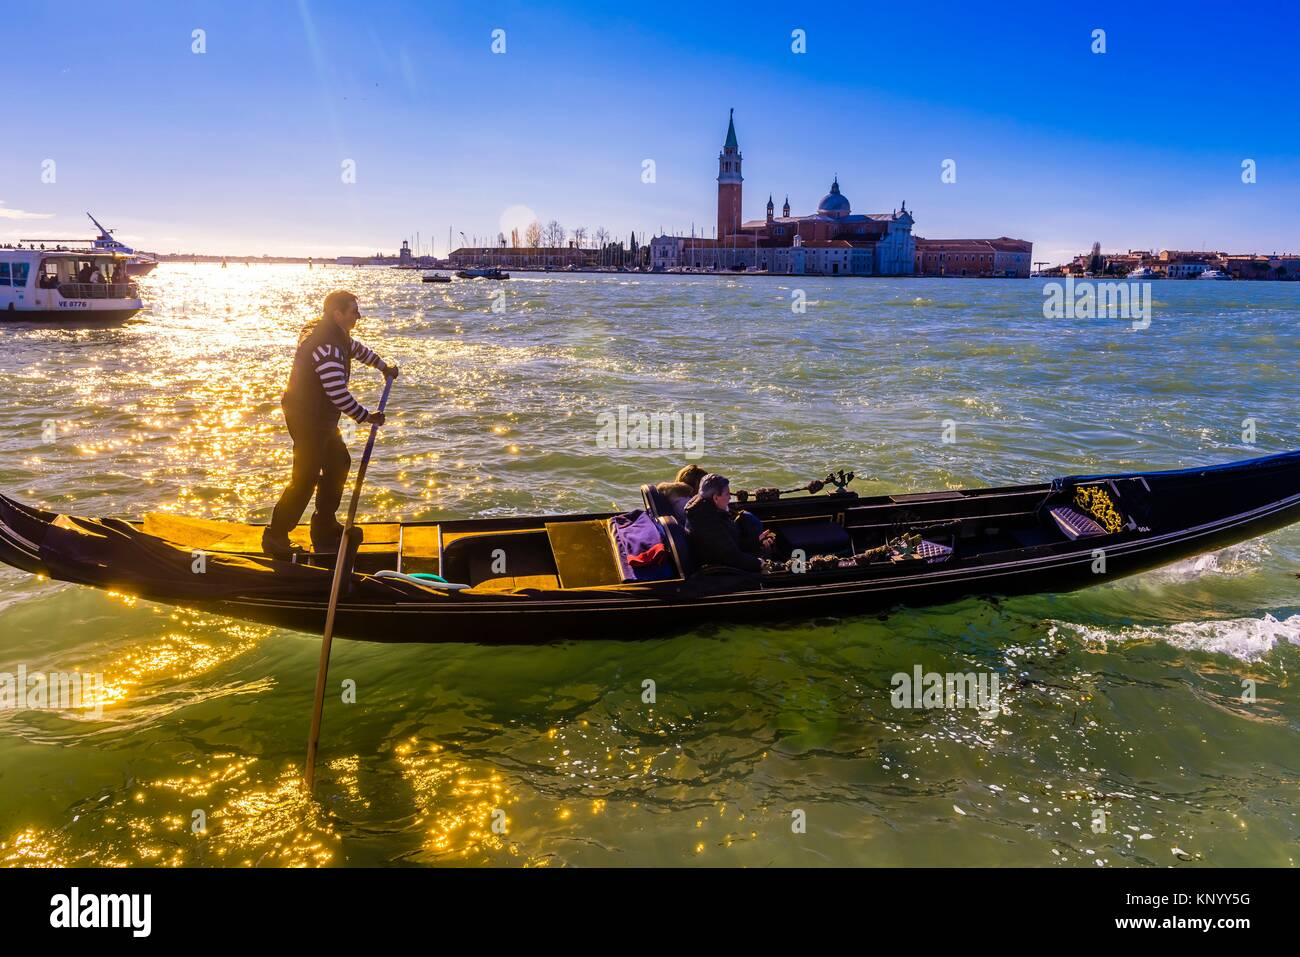 Gondolier rowing on the Venice Lagoon with Church of San Giorgio Maggiore in background, Venice, Italy. - Stock Image